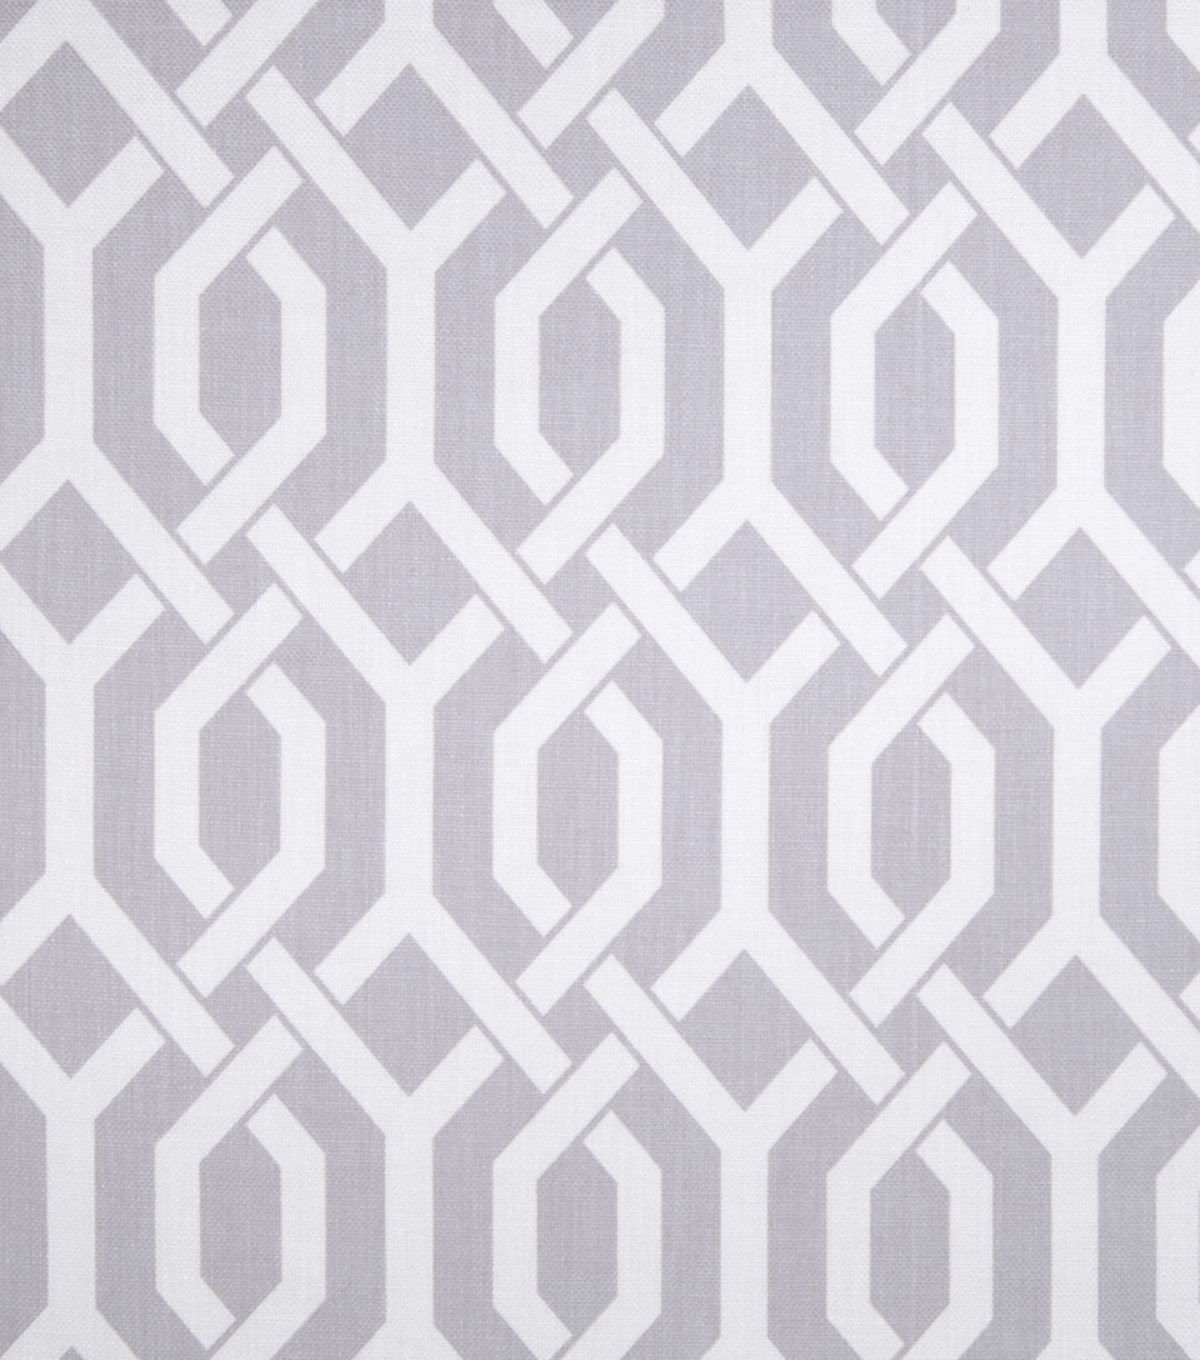 Home Decor 8\u0022x8\u0022 Fabric Swatch-Upholstery Fabric Eaton Square Flagstone Grey